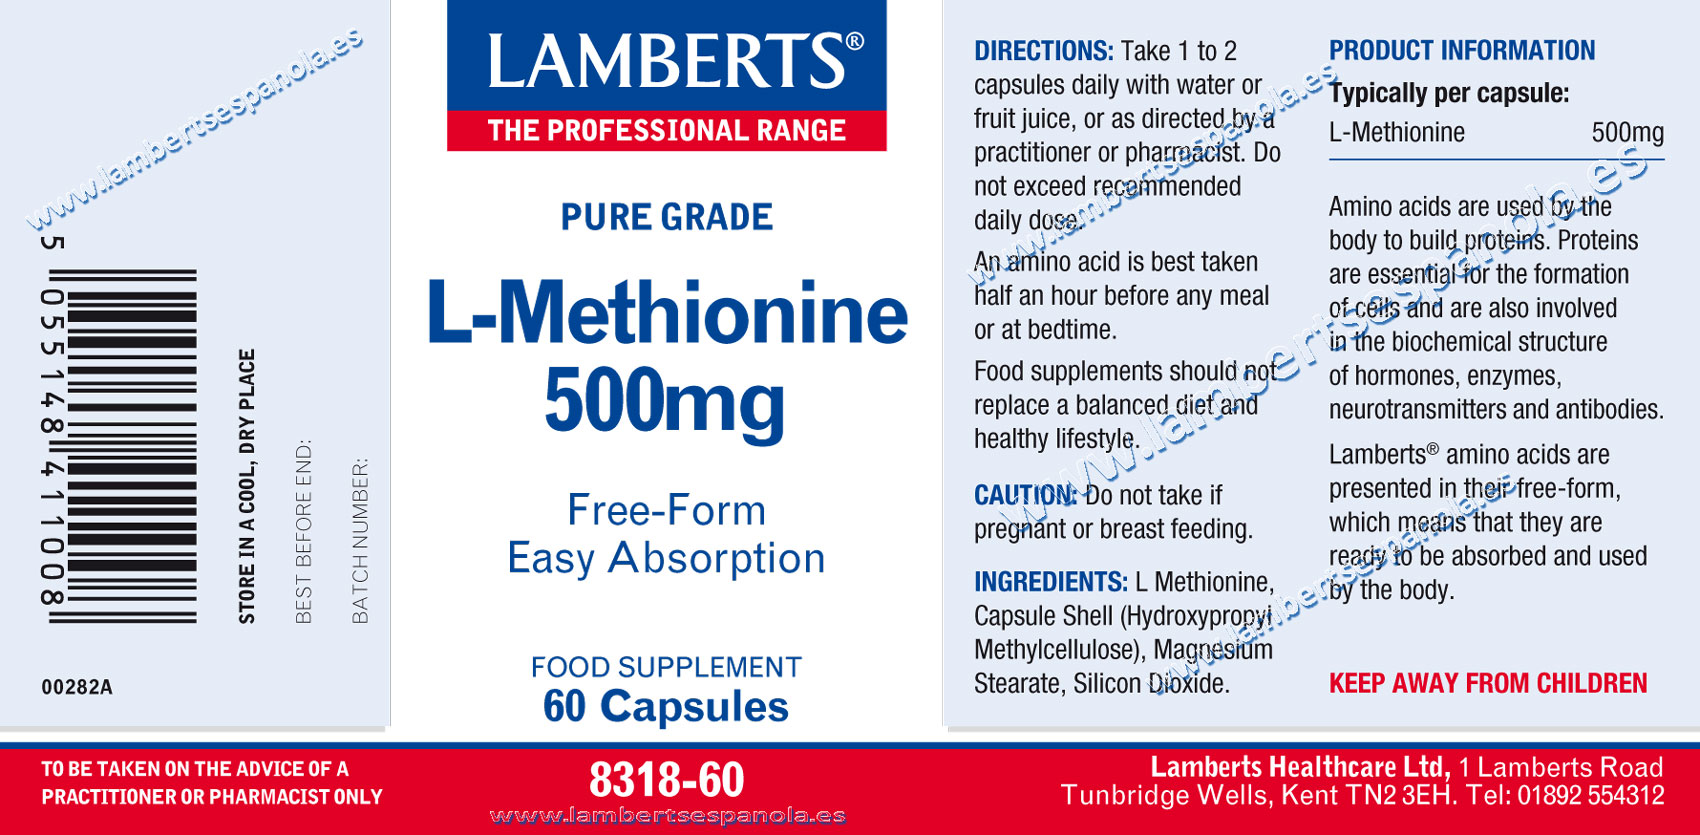 L-Methionine properties